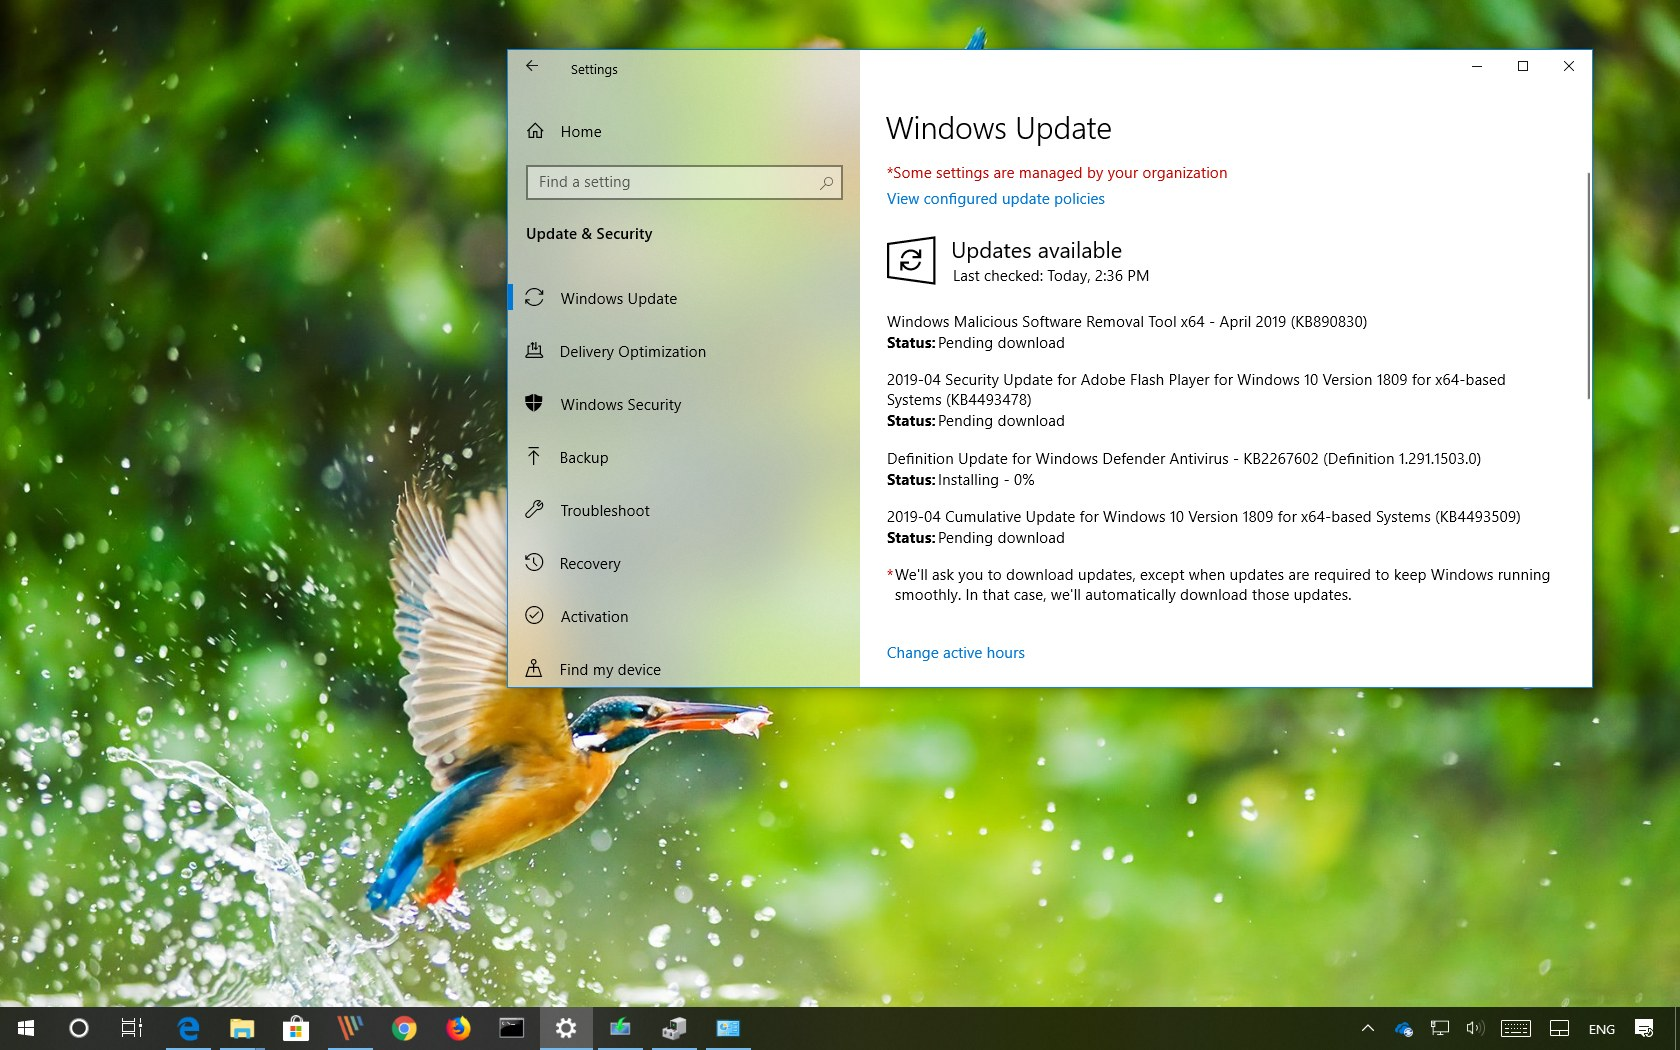 KB4493509 update for Windows 10 version 1809